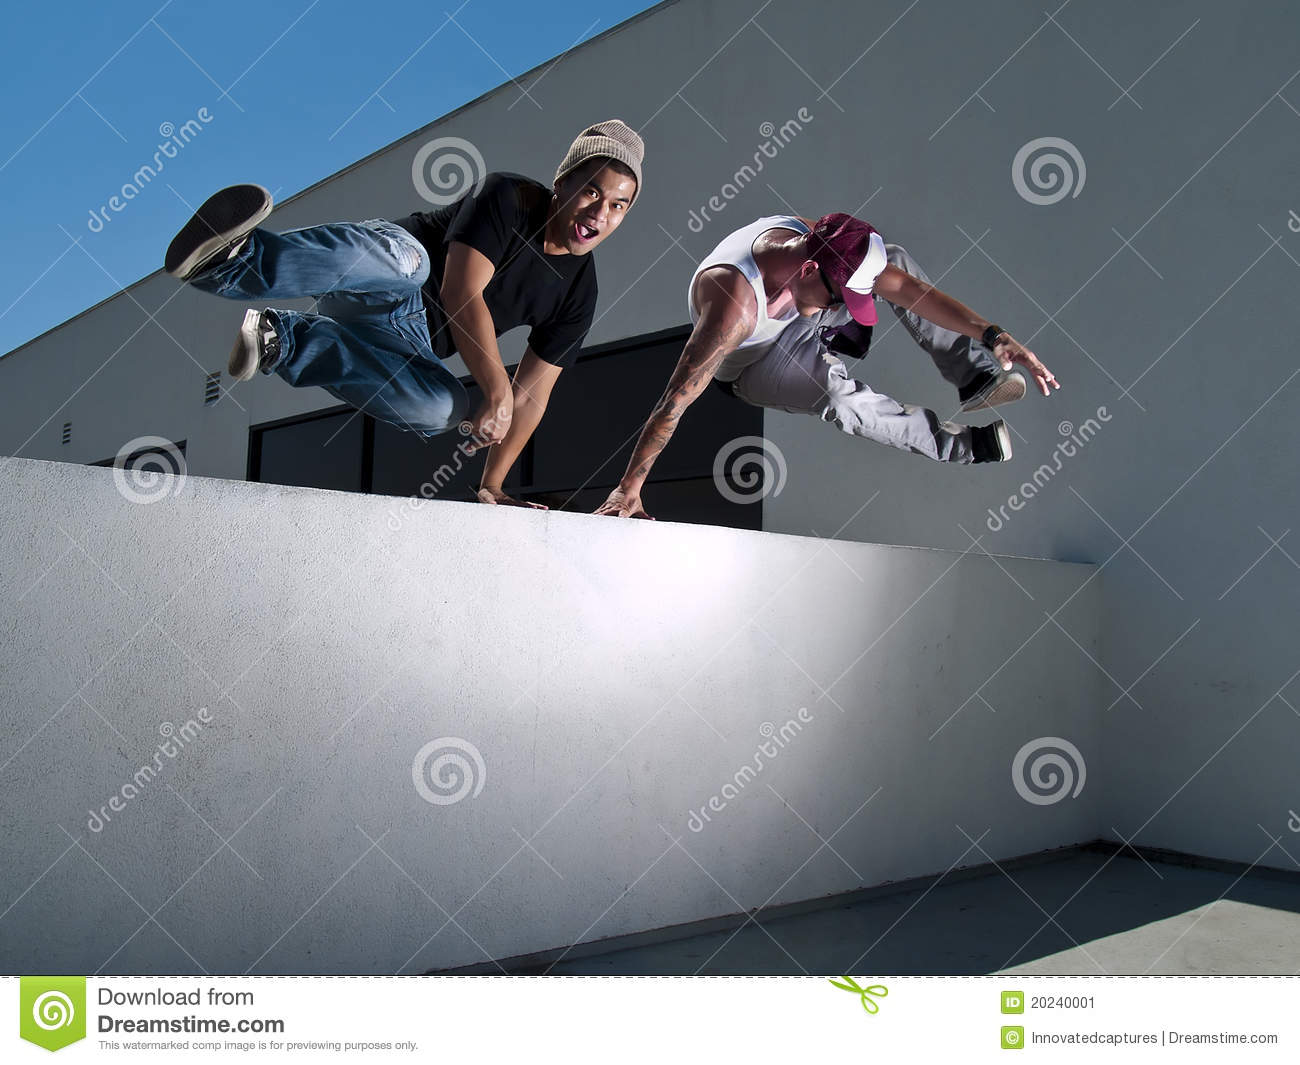 2 Parkour Freerunners